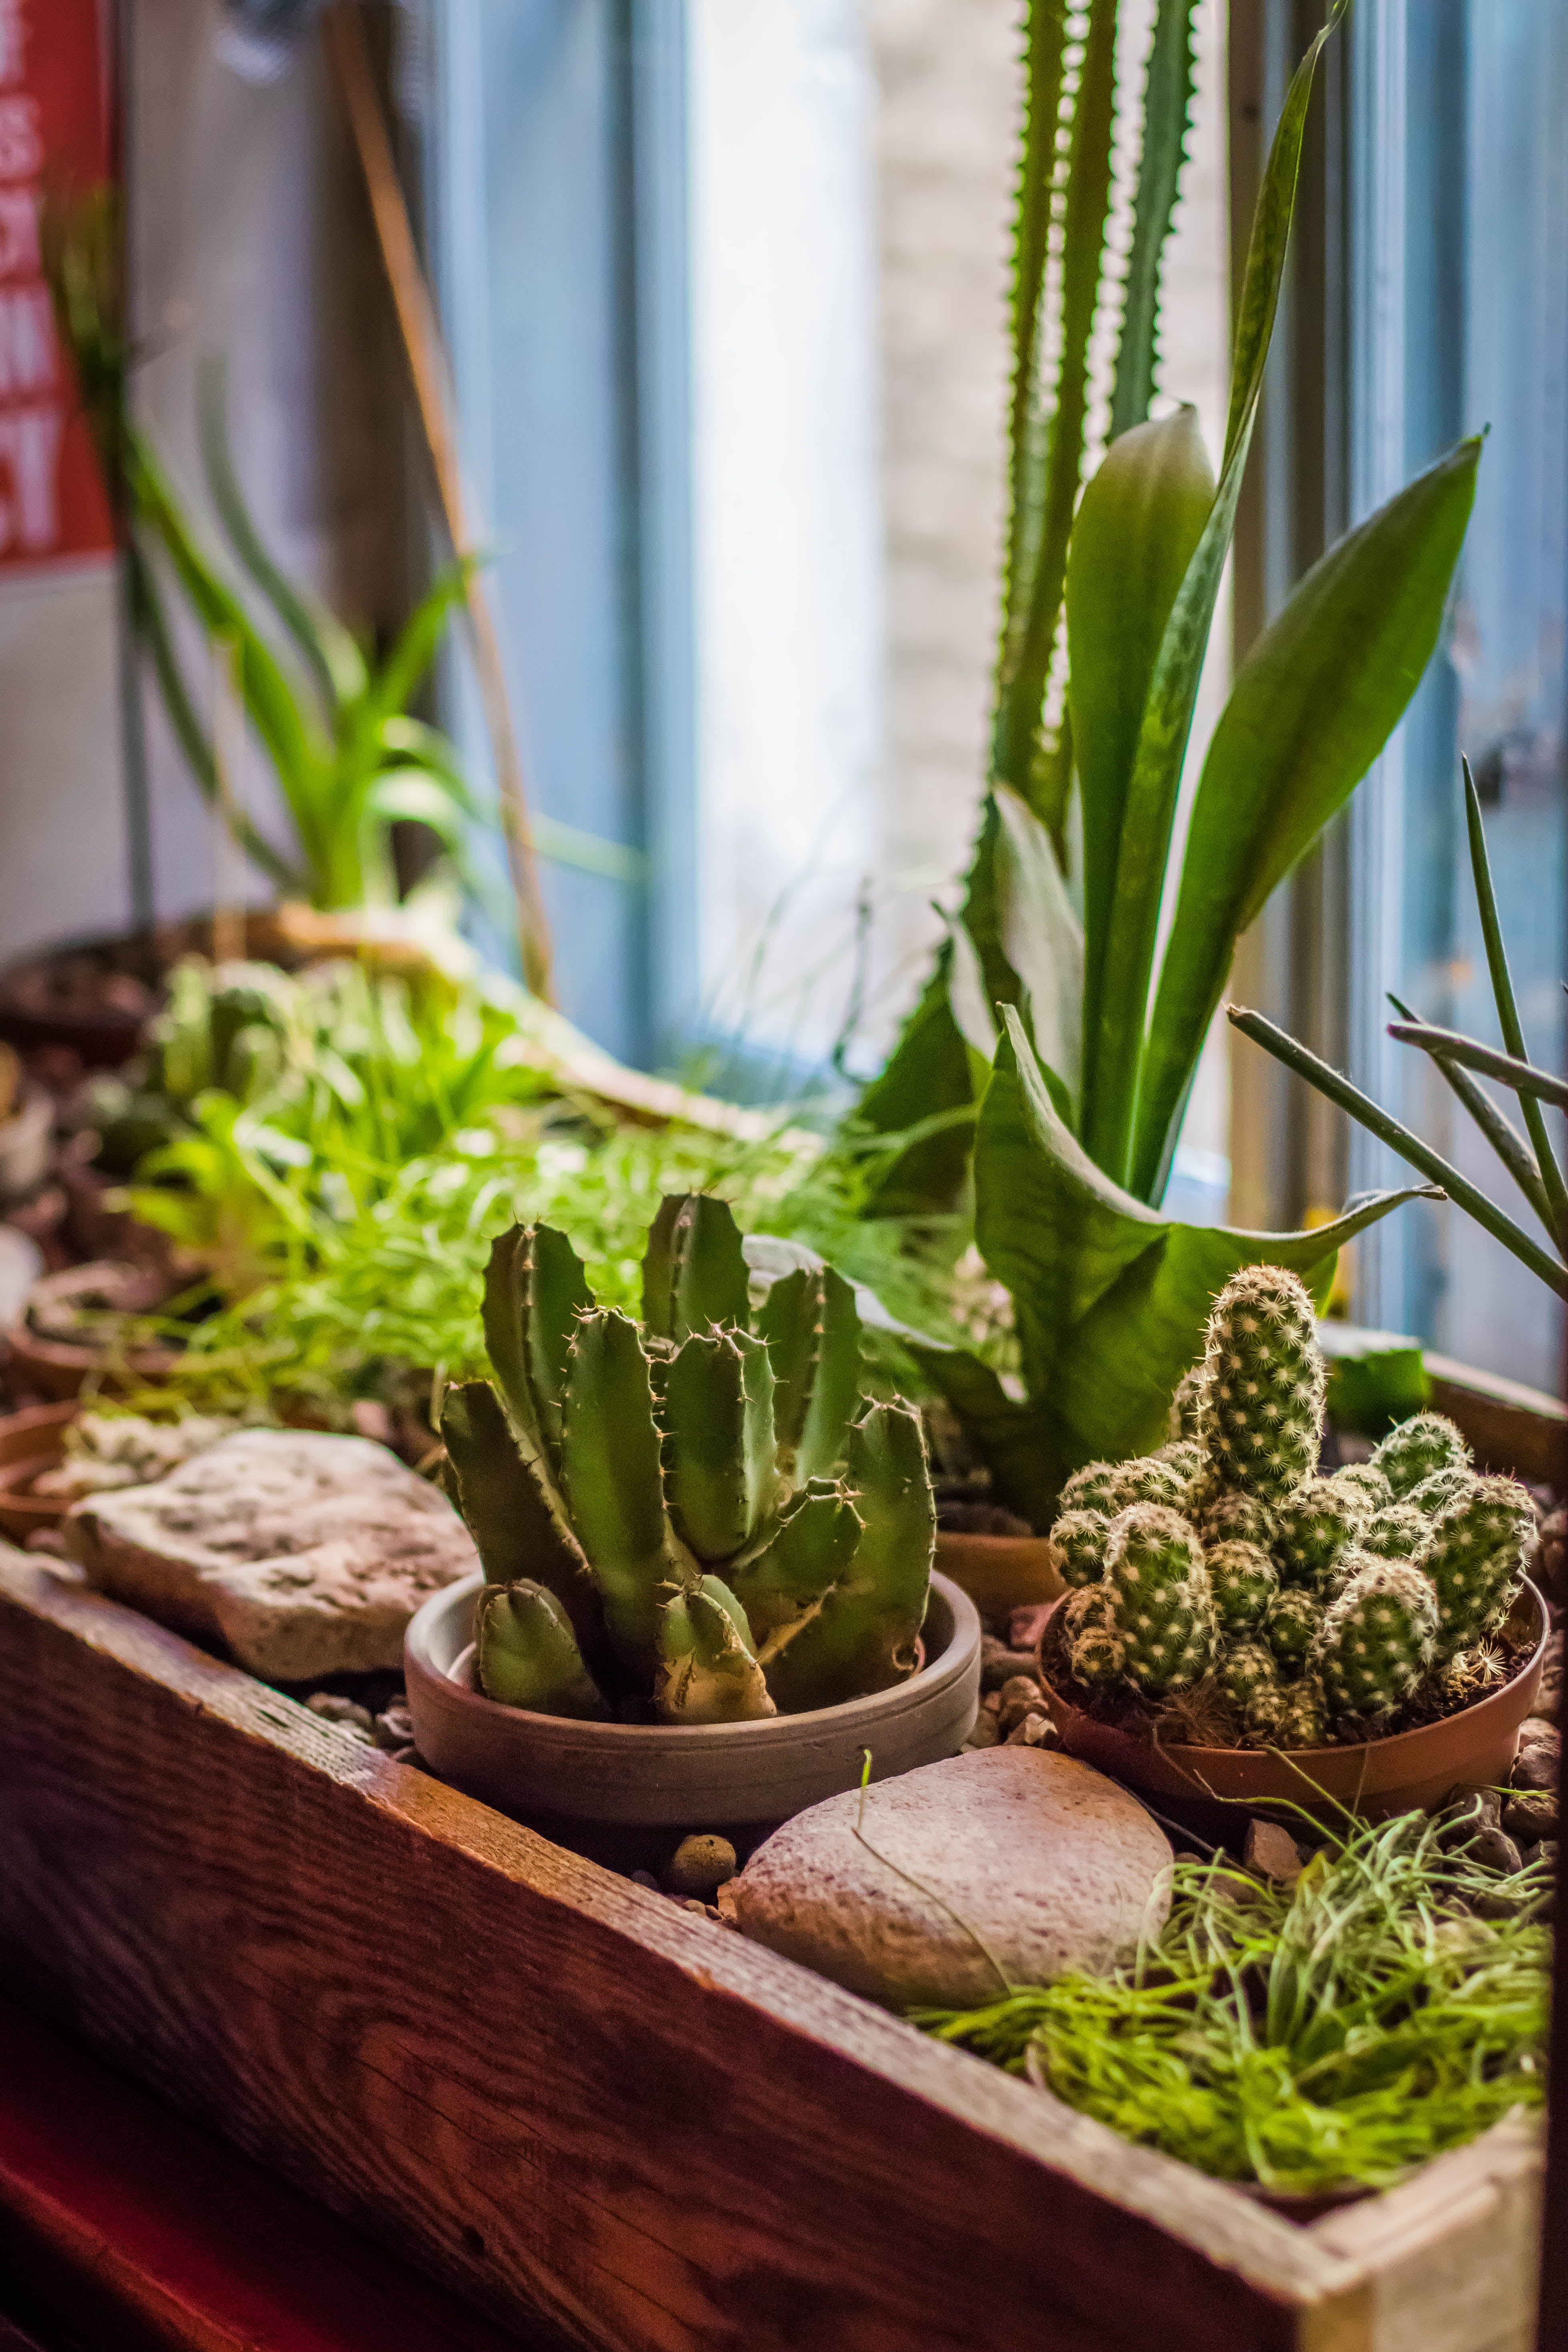 Selective Focus Photo Of Green Cacti Plants